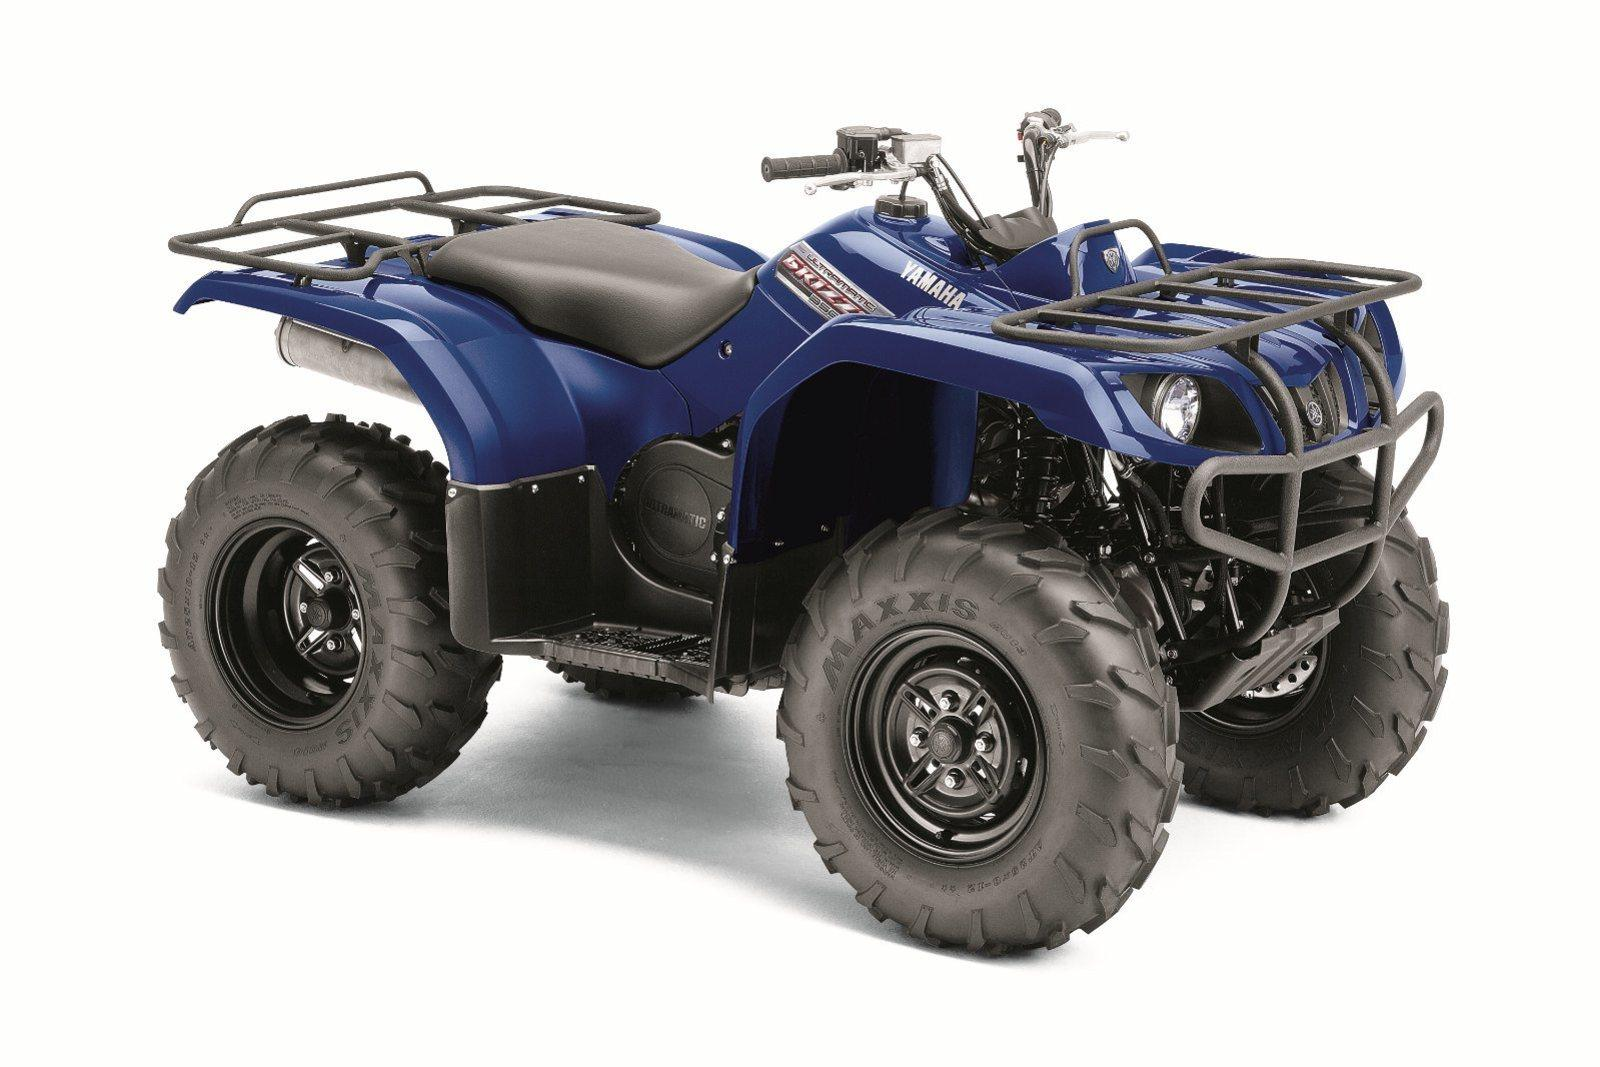 Yamaha Grizzly 350 Auto 4x4 Review